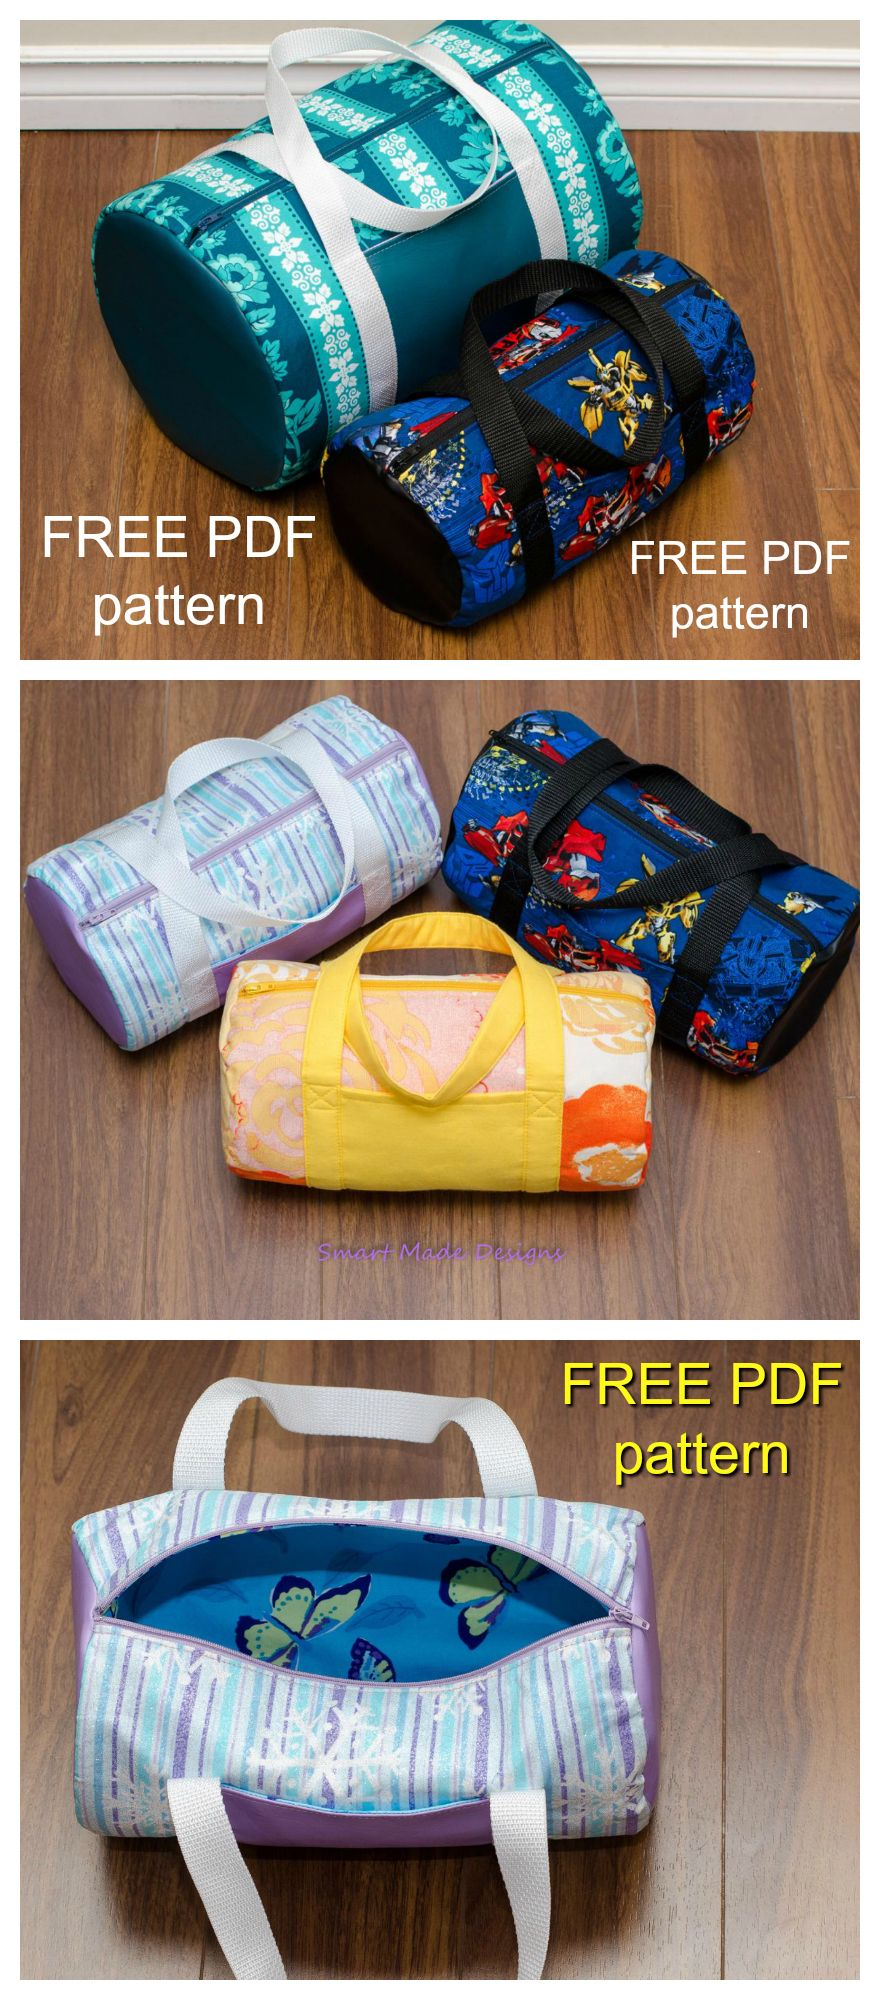 69c3d9673e FREE pdf sewing pattern for this Duffle Bag   Mini Duffle Bag.This is a very  basic and beginner friendly bag pattern. The medium sized duffle bag is  great ...